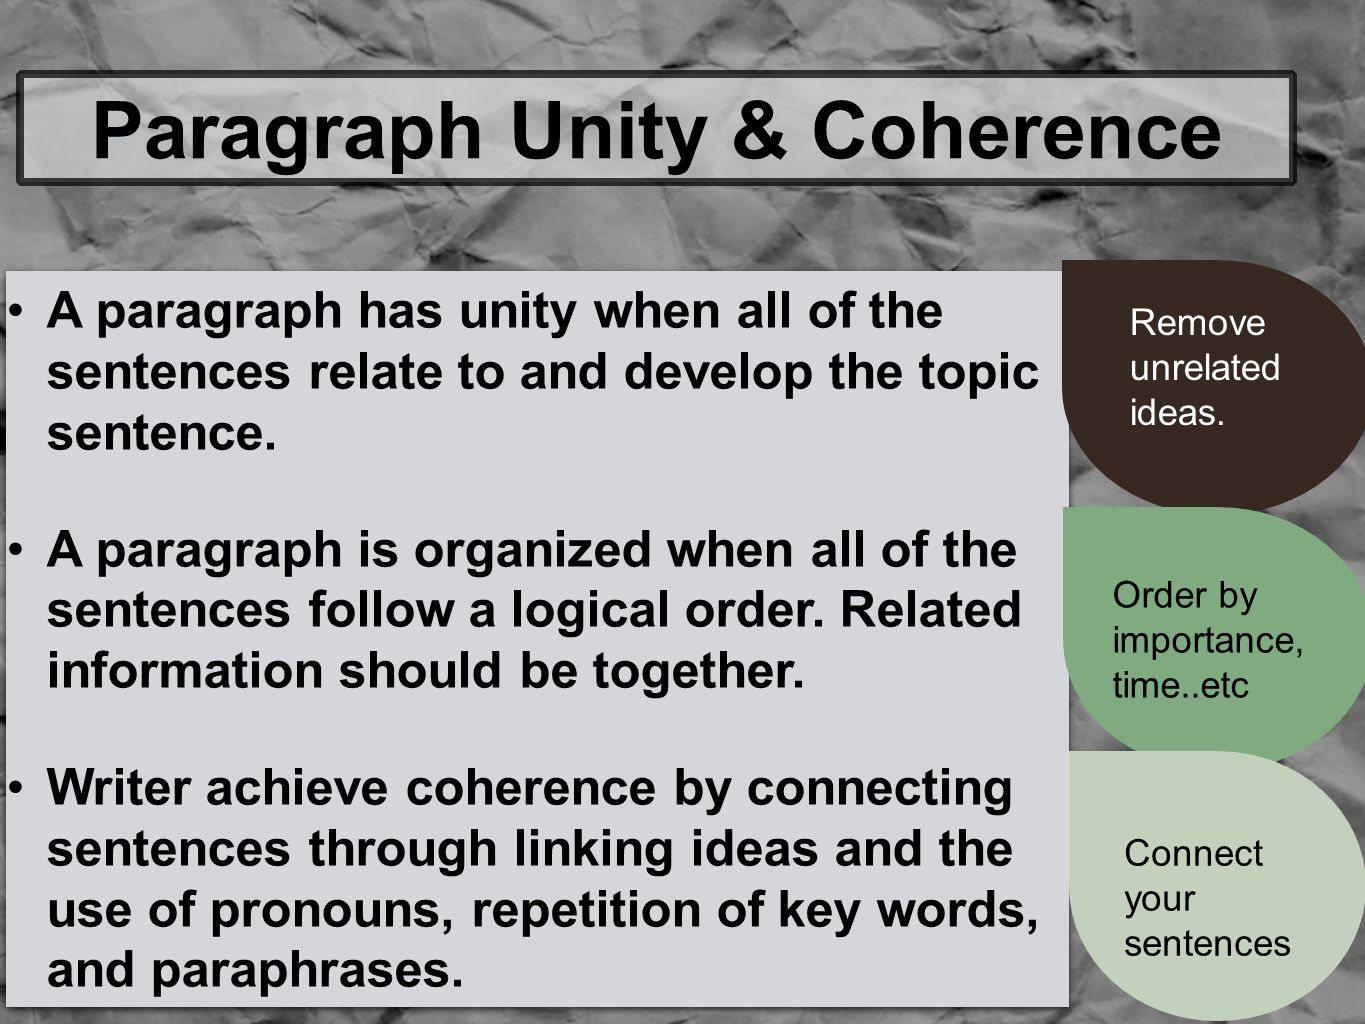 A paragraph has unity when all of the sentences relate to and develop the topic sentence.